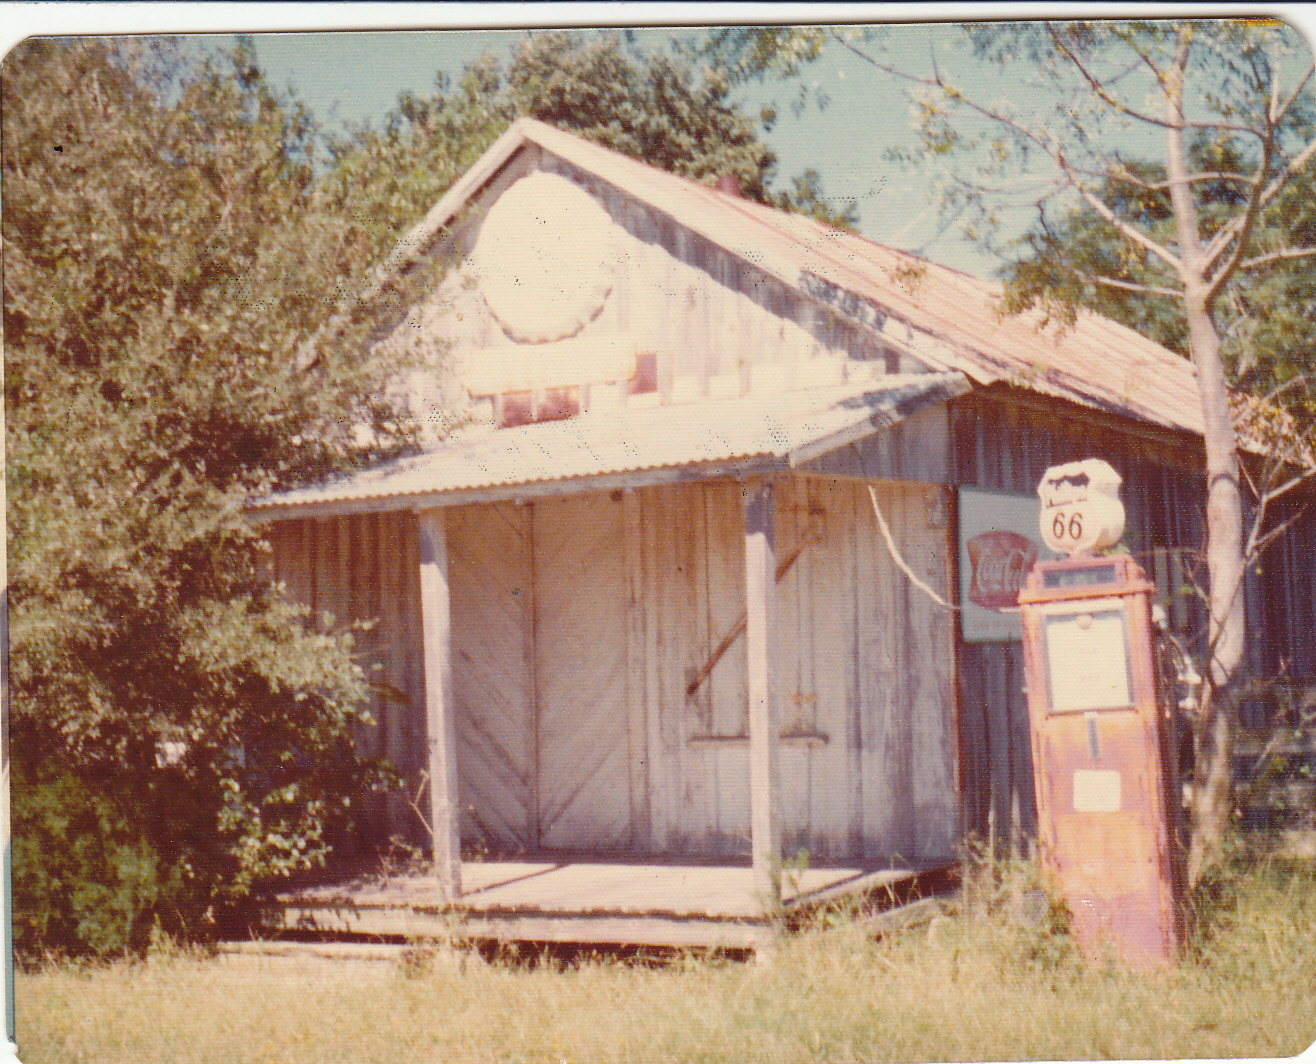 Haak Store near Pattison